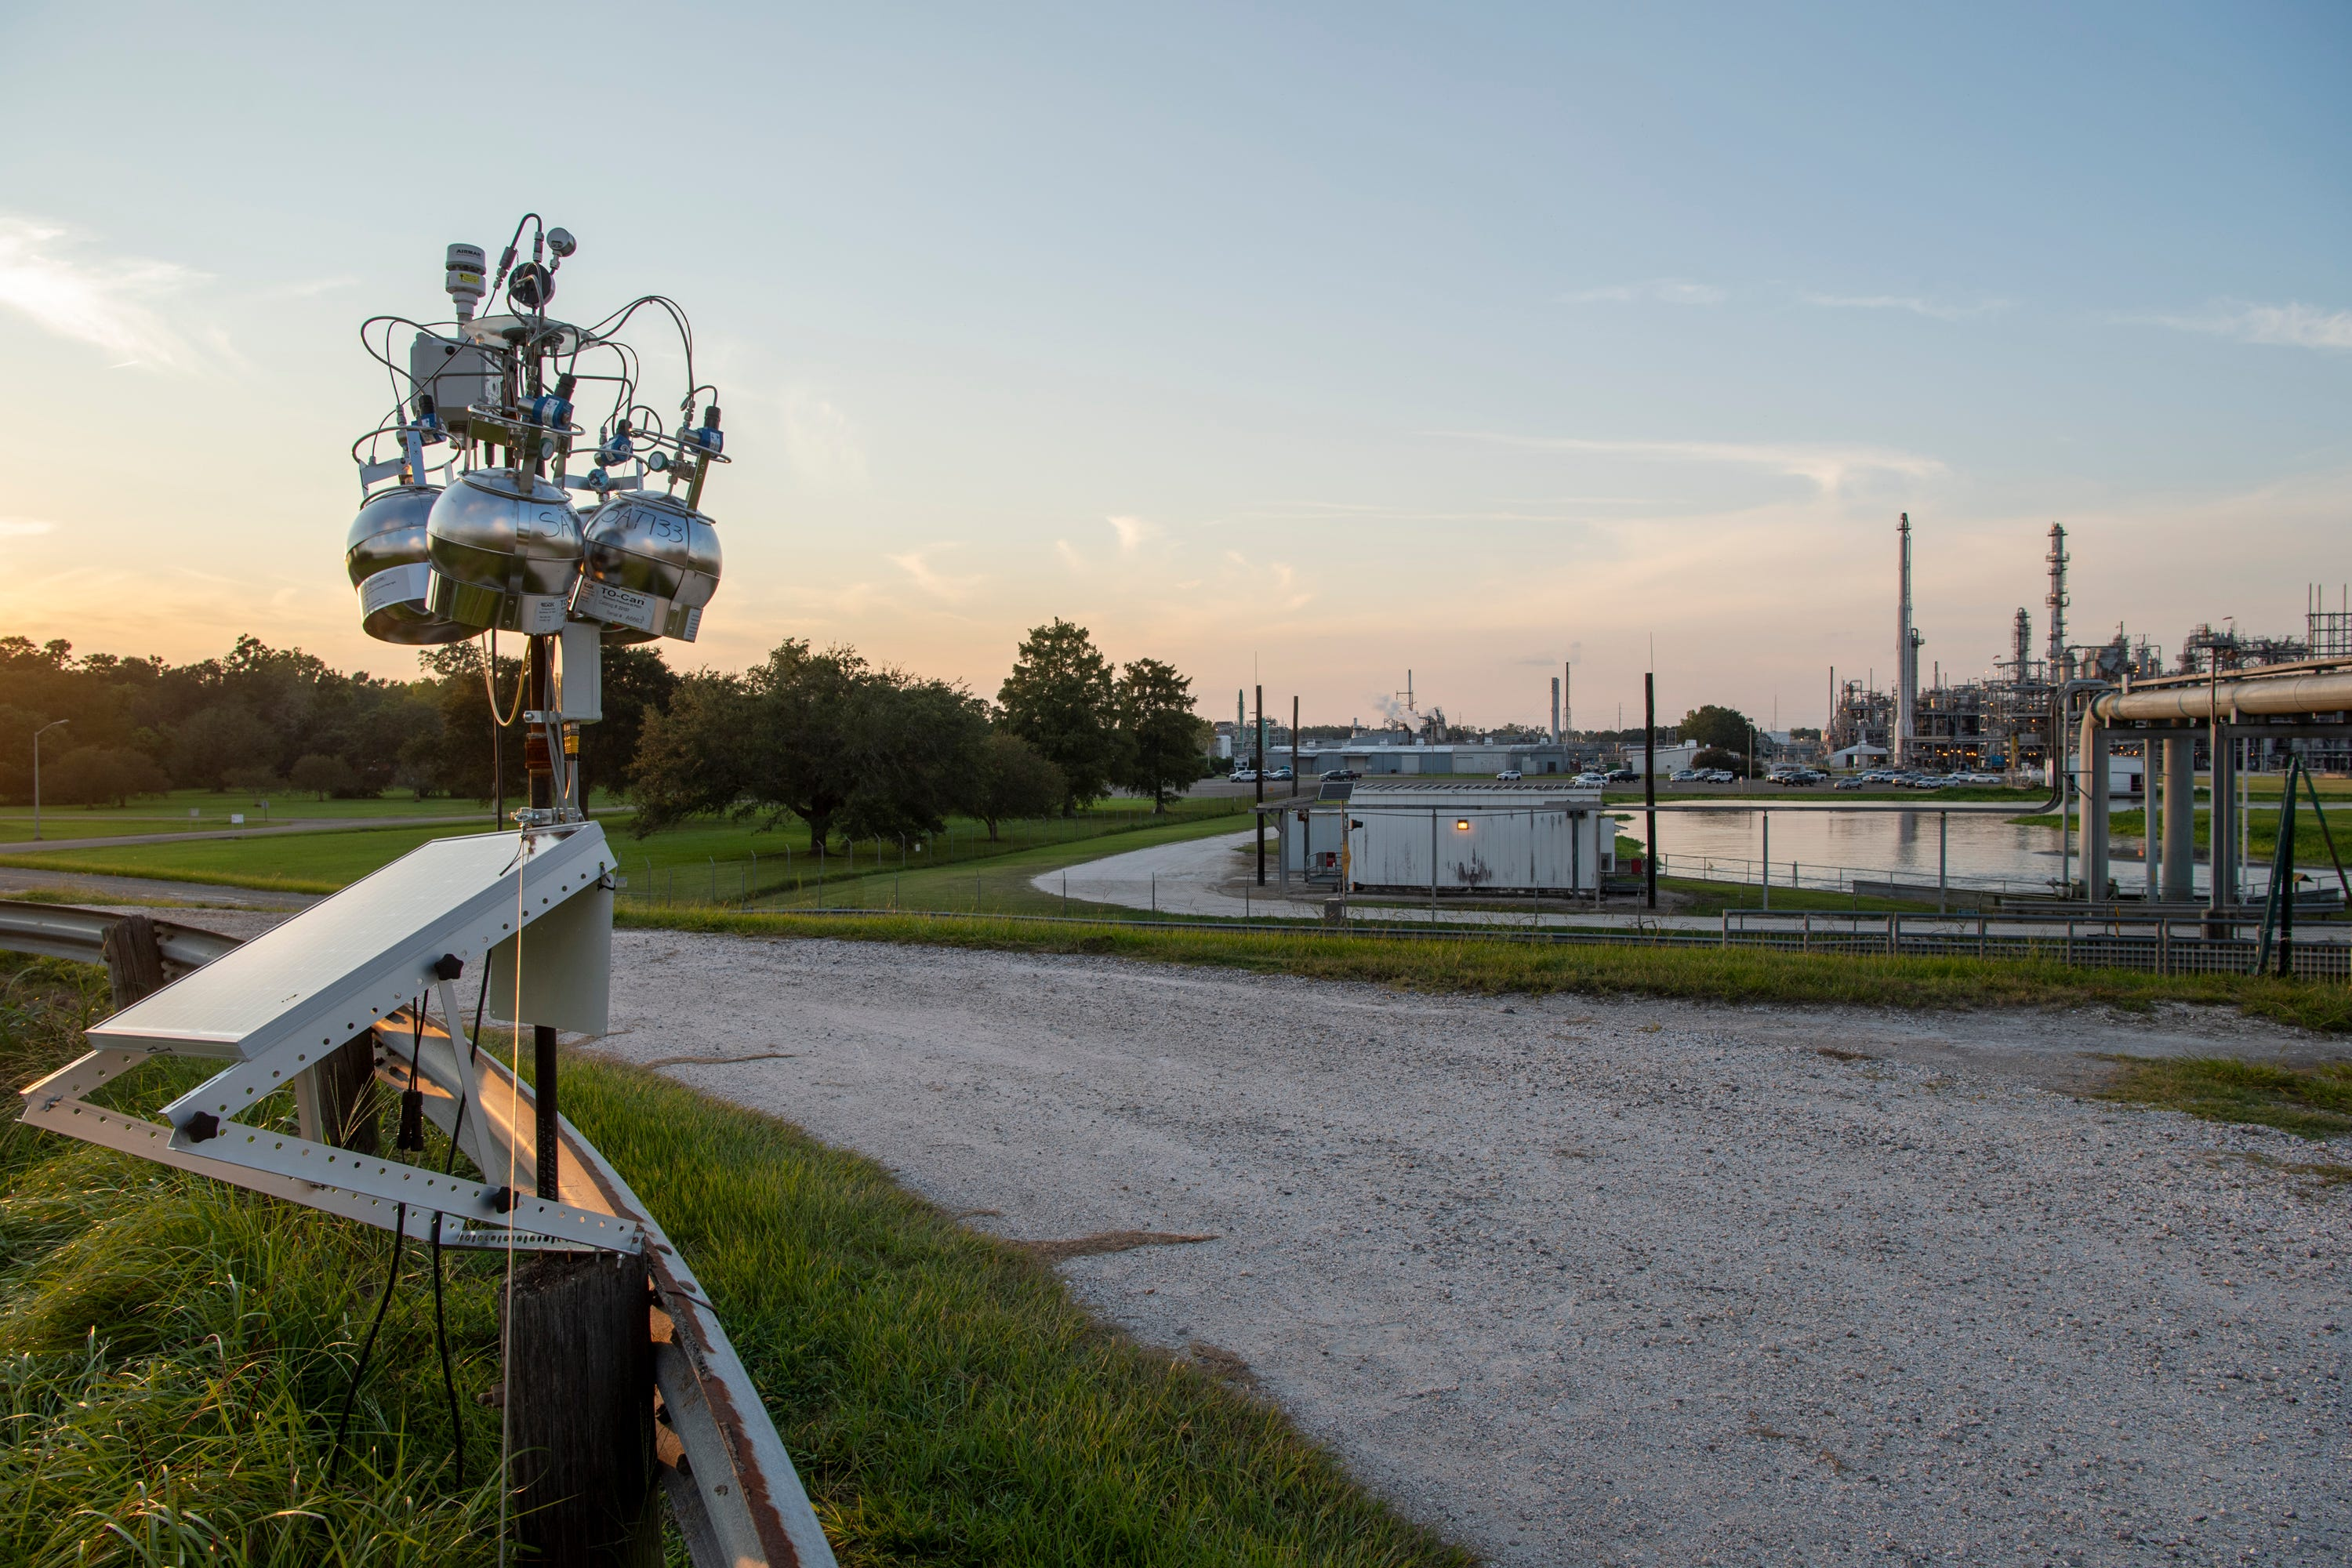 An EPA air monitoring device sits atop a levee across the street from the Denka Performance Elastomer neoprene plant in Reserve, La. The EPA classified chloroprene as a likely carcinogen in 2010 and has been closely monitoring air quality near the plant since 2016.